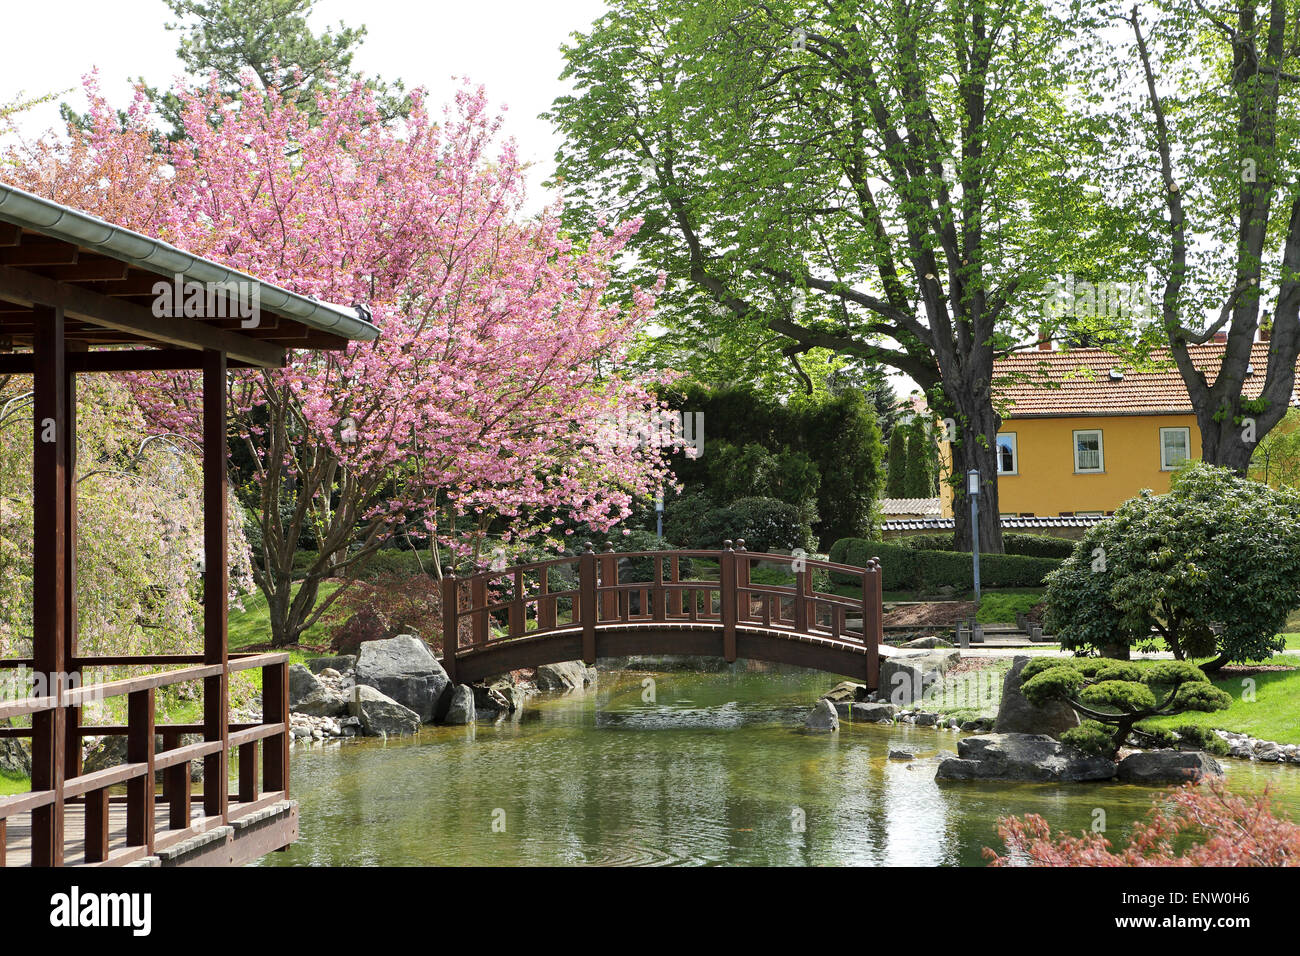 An Arched Bridge By Blossoming Cherry Trees In The Japanese Garden